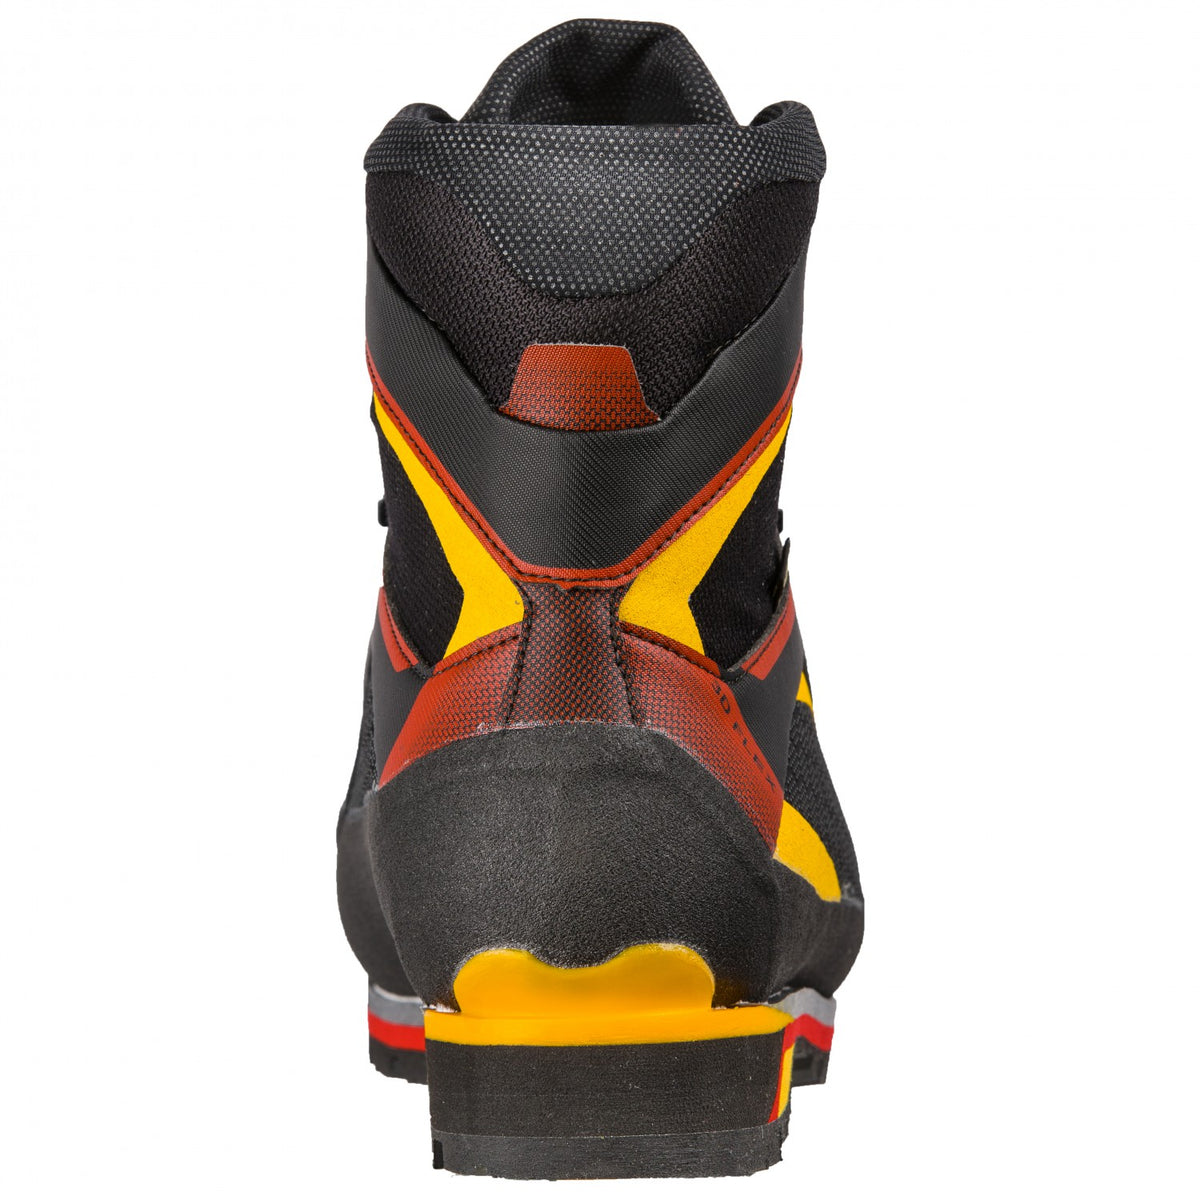 La Sportiva Trango Tower Extreme GTX mountaineering boot, view from behind of the heel